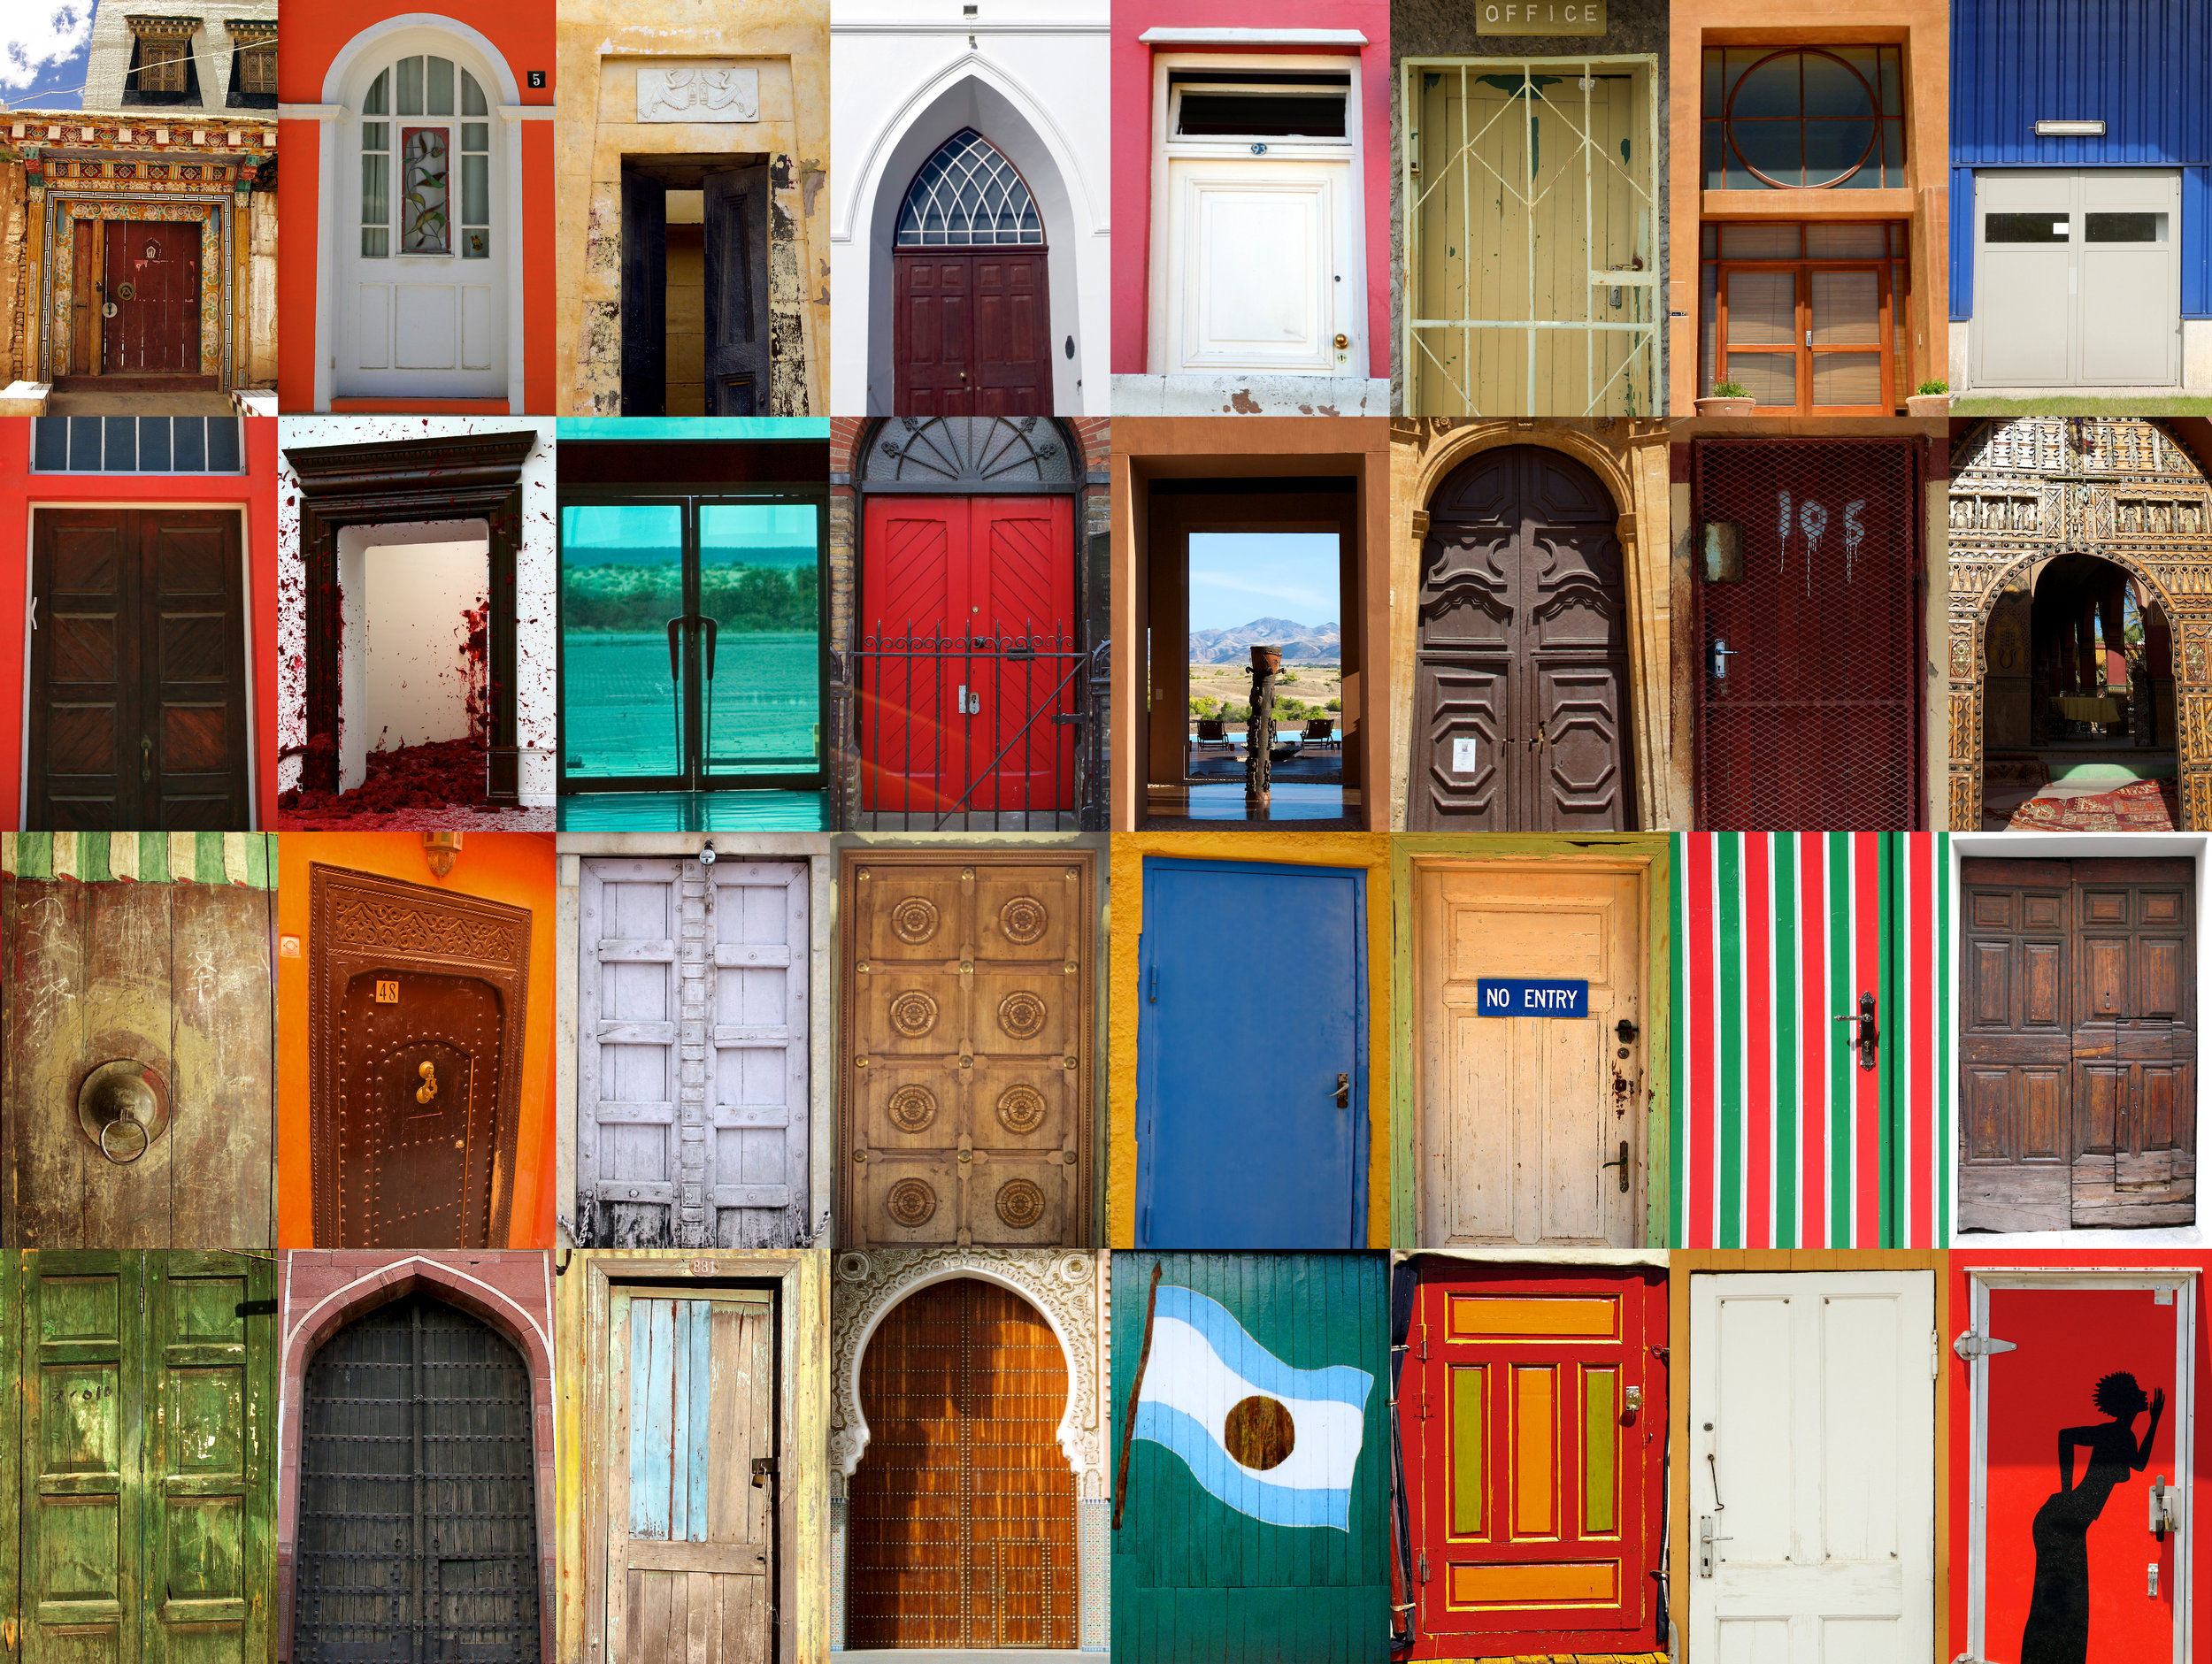 Photo: Doors to the World